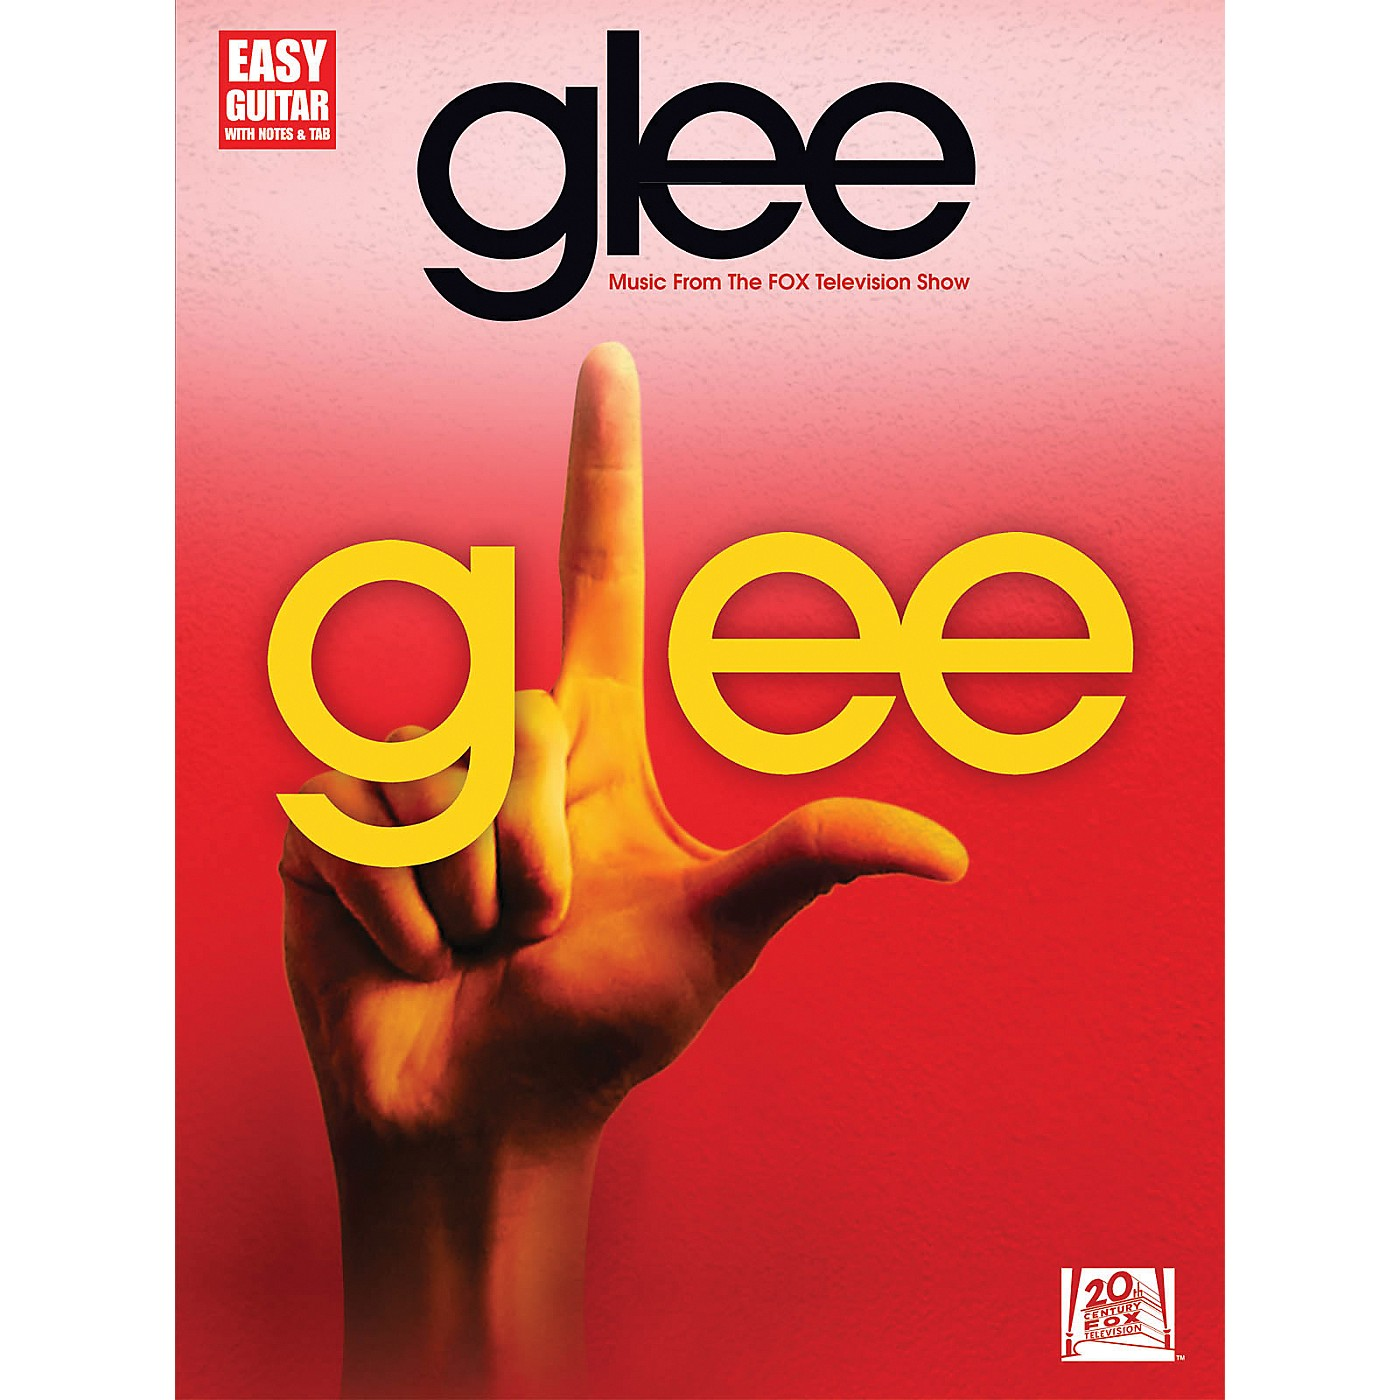 Hal Leonard Glee Music From The Fox Television Show For Easy Guitar With Tab thumbnail